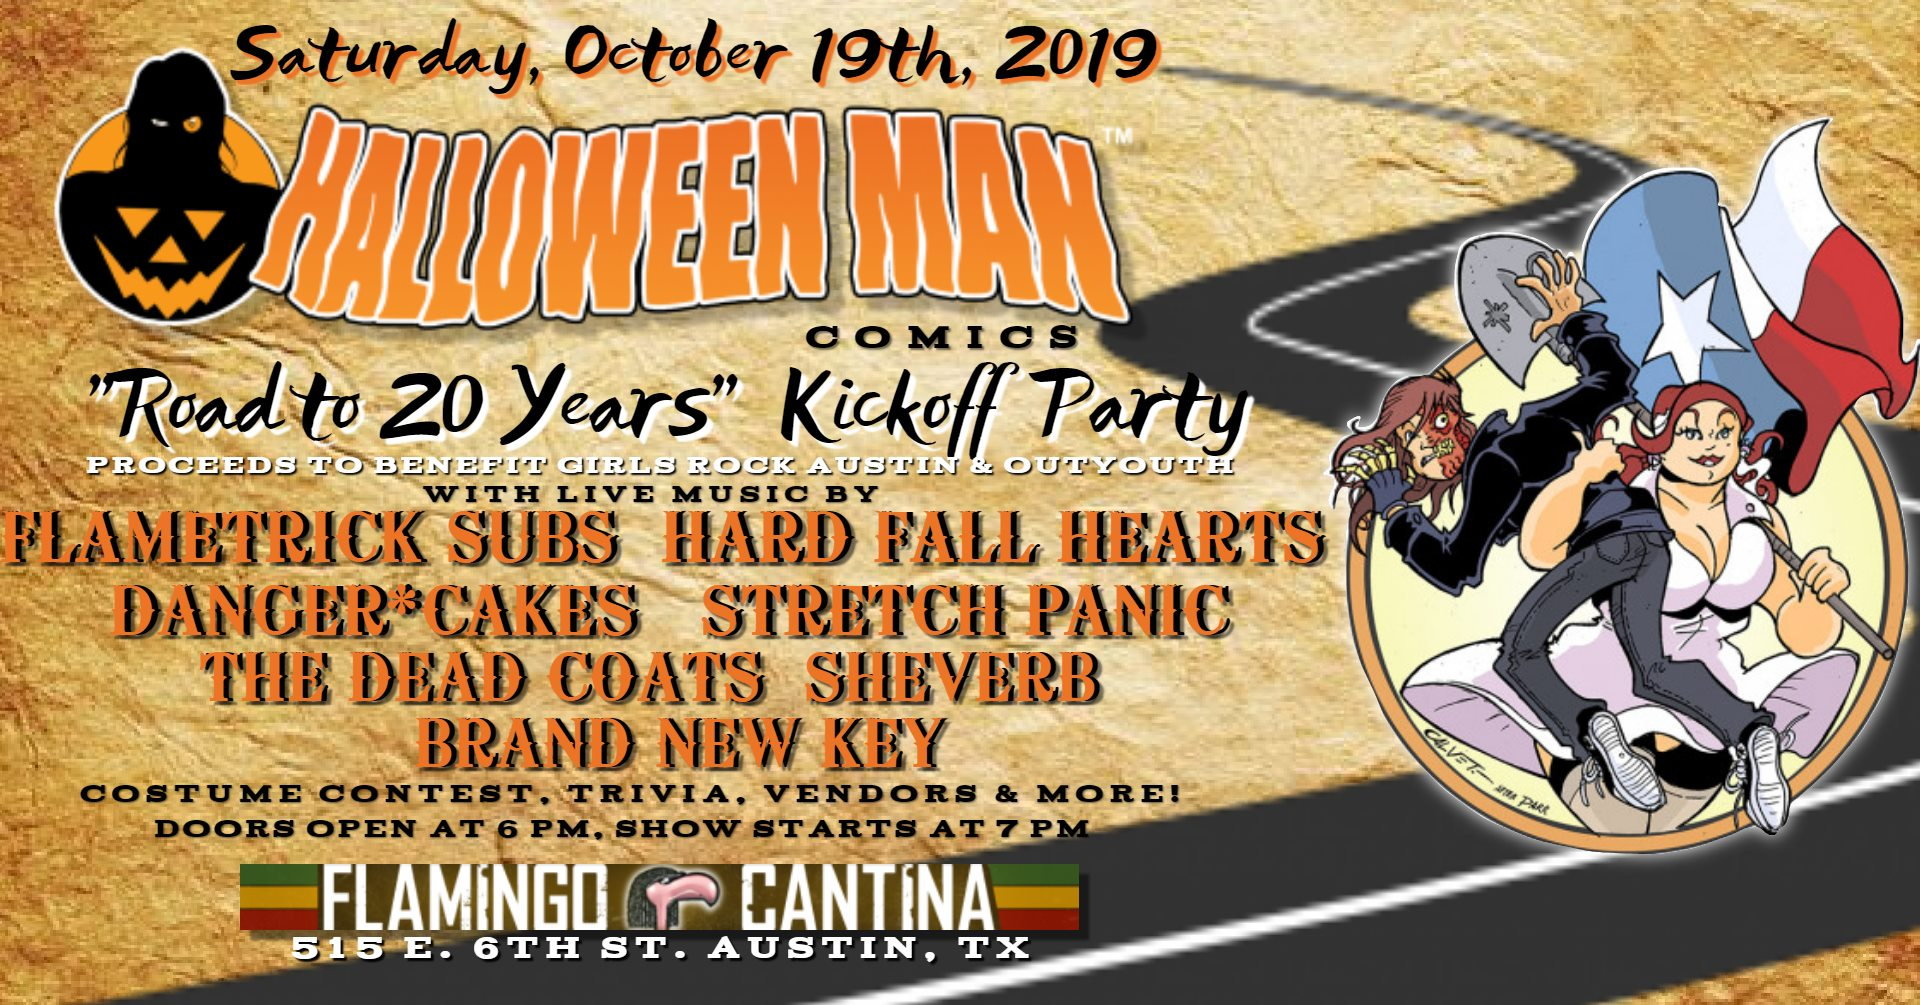 Halloween Man: Road to 20 Years Kickoff Party